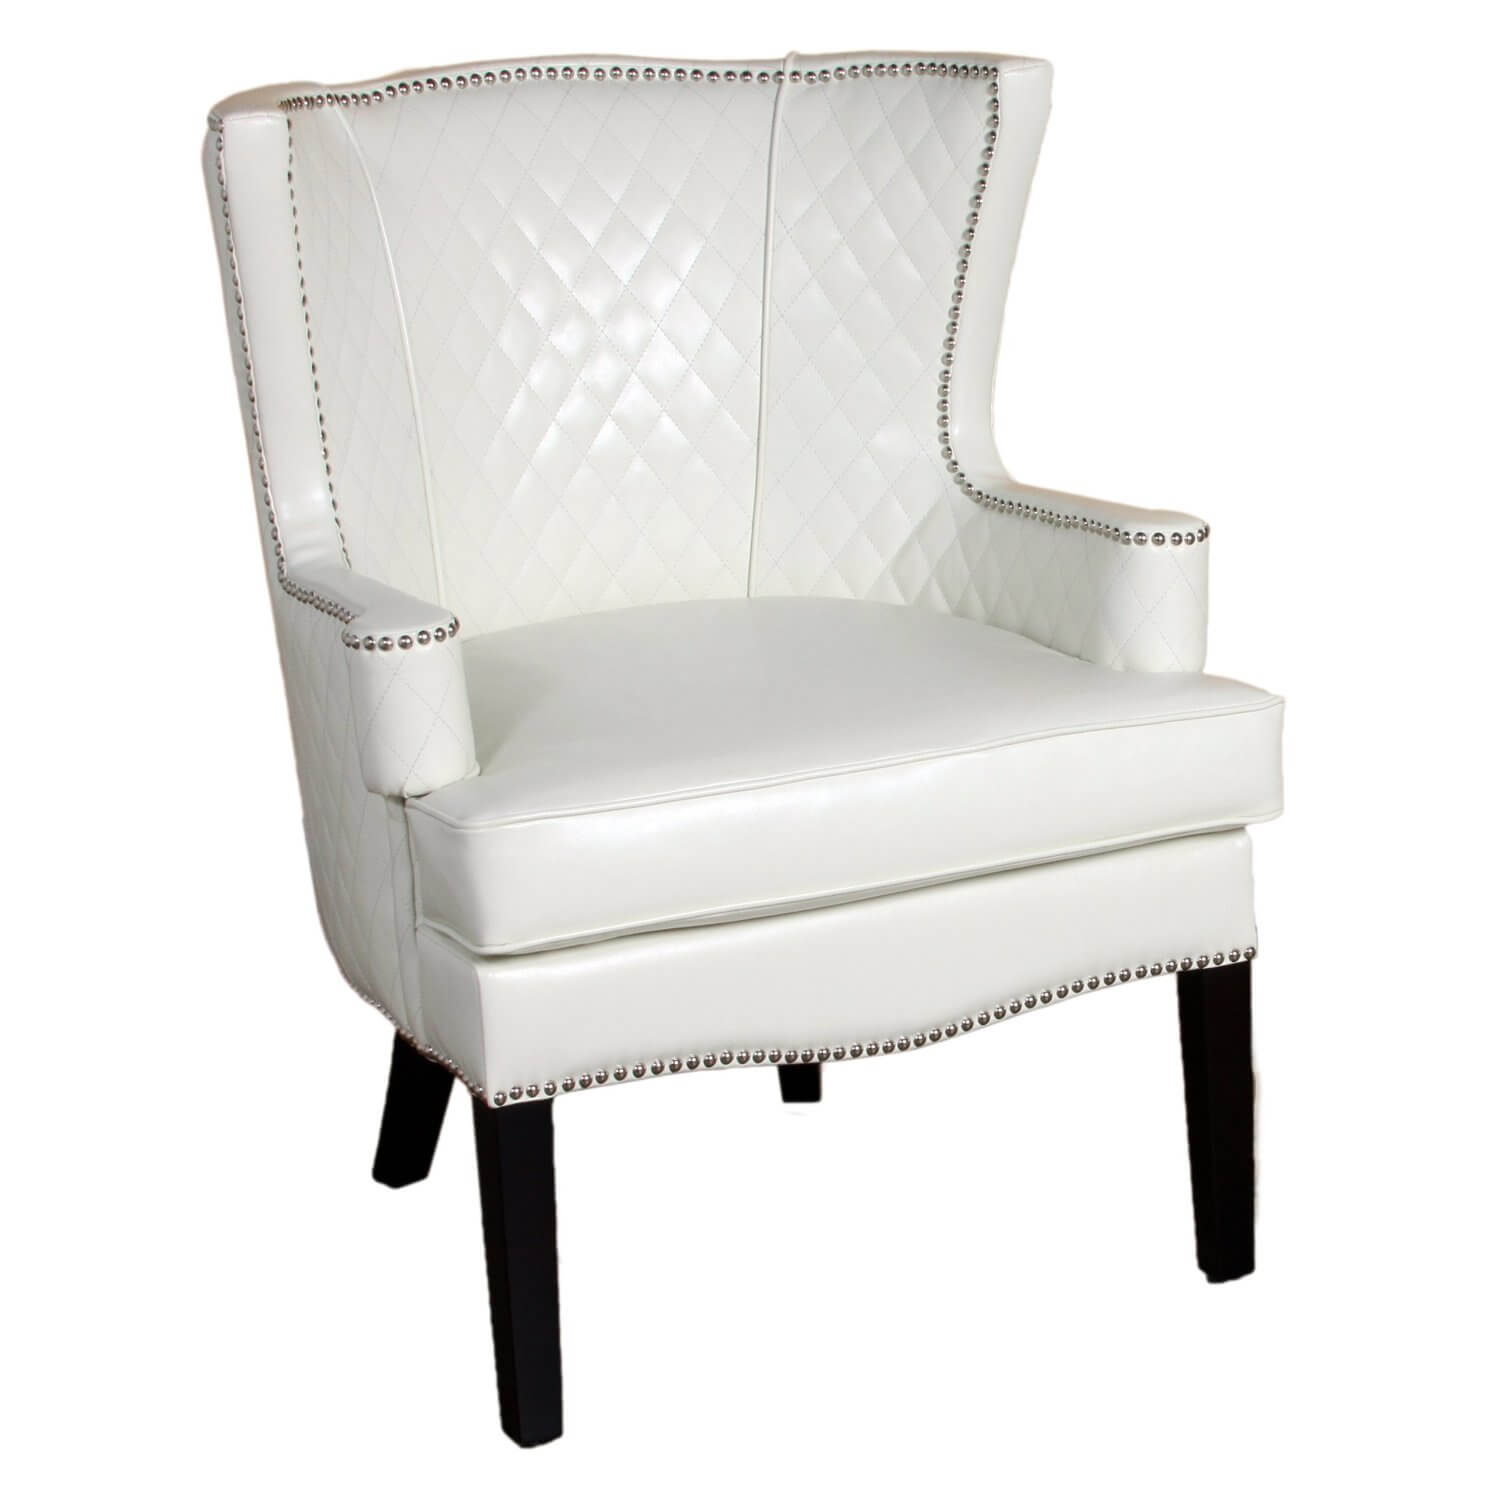 accent living room chairs with arms ebay barber 37 white modern for the another ivory toned chair this quilted leather seat by best features wide seating